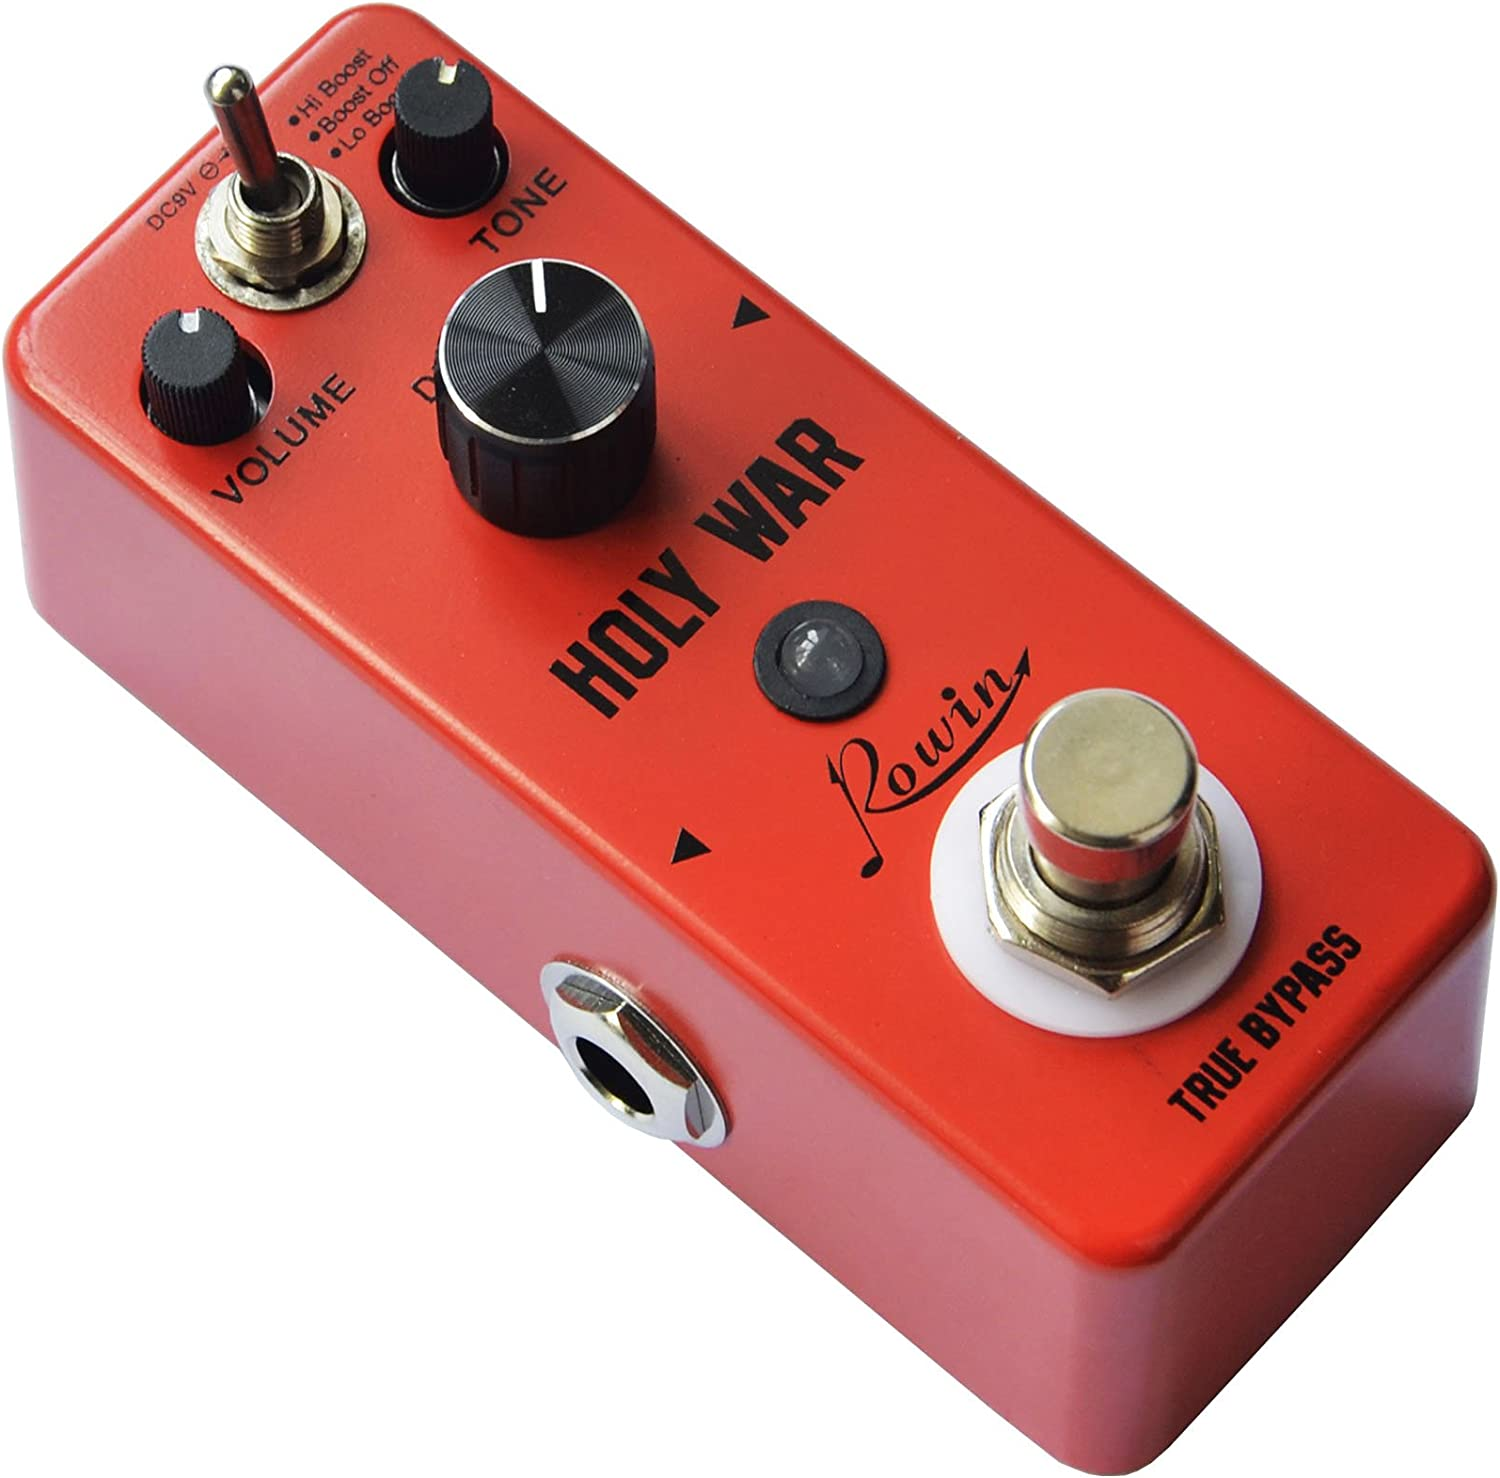 Rowin Heavy metal distortion RAVING Effects Pedal LN-305 electric guitar pedal